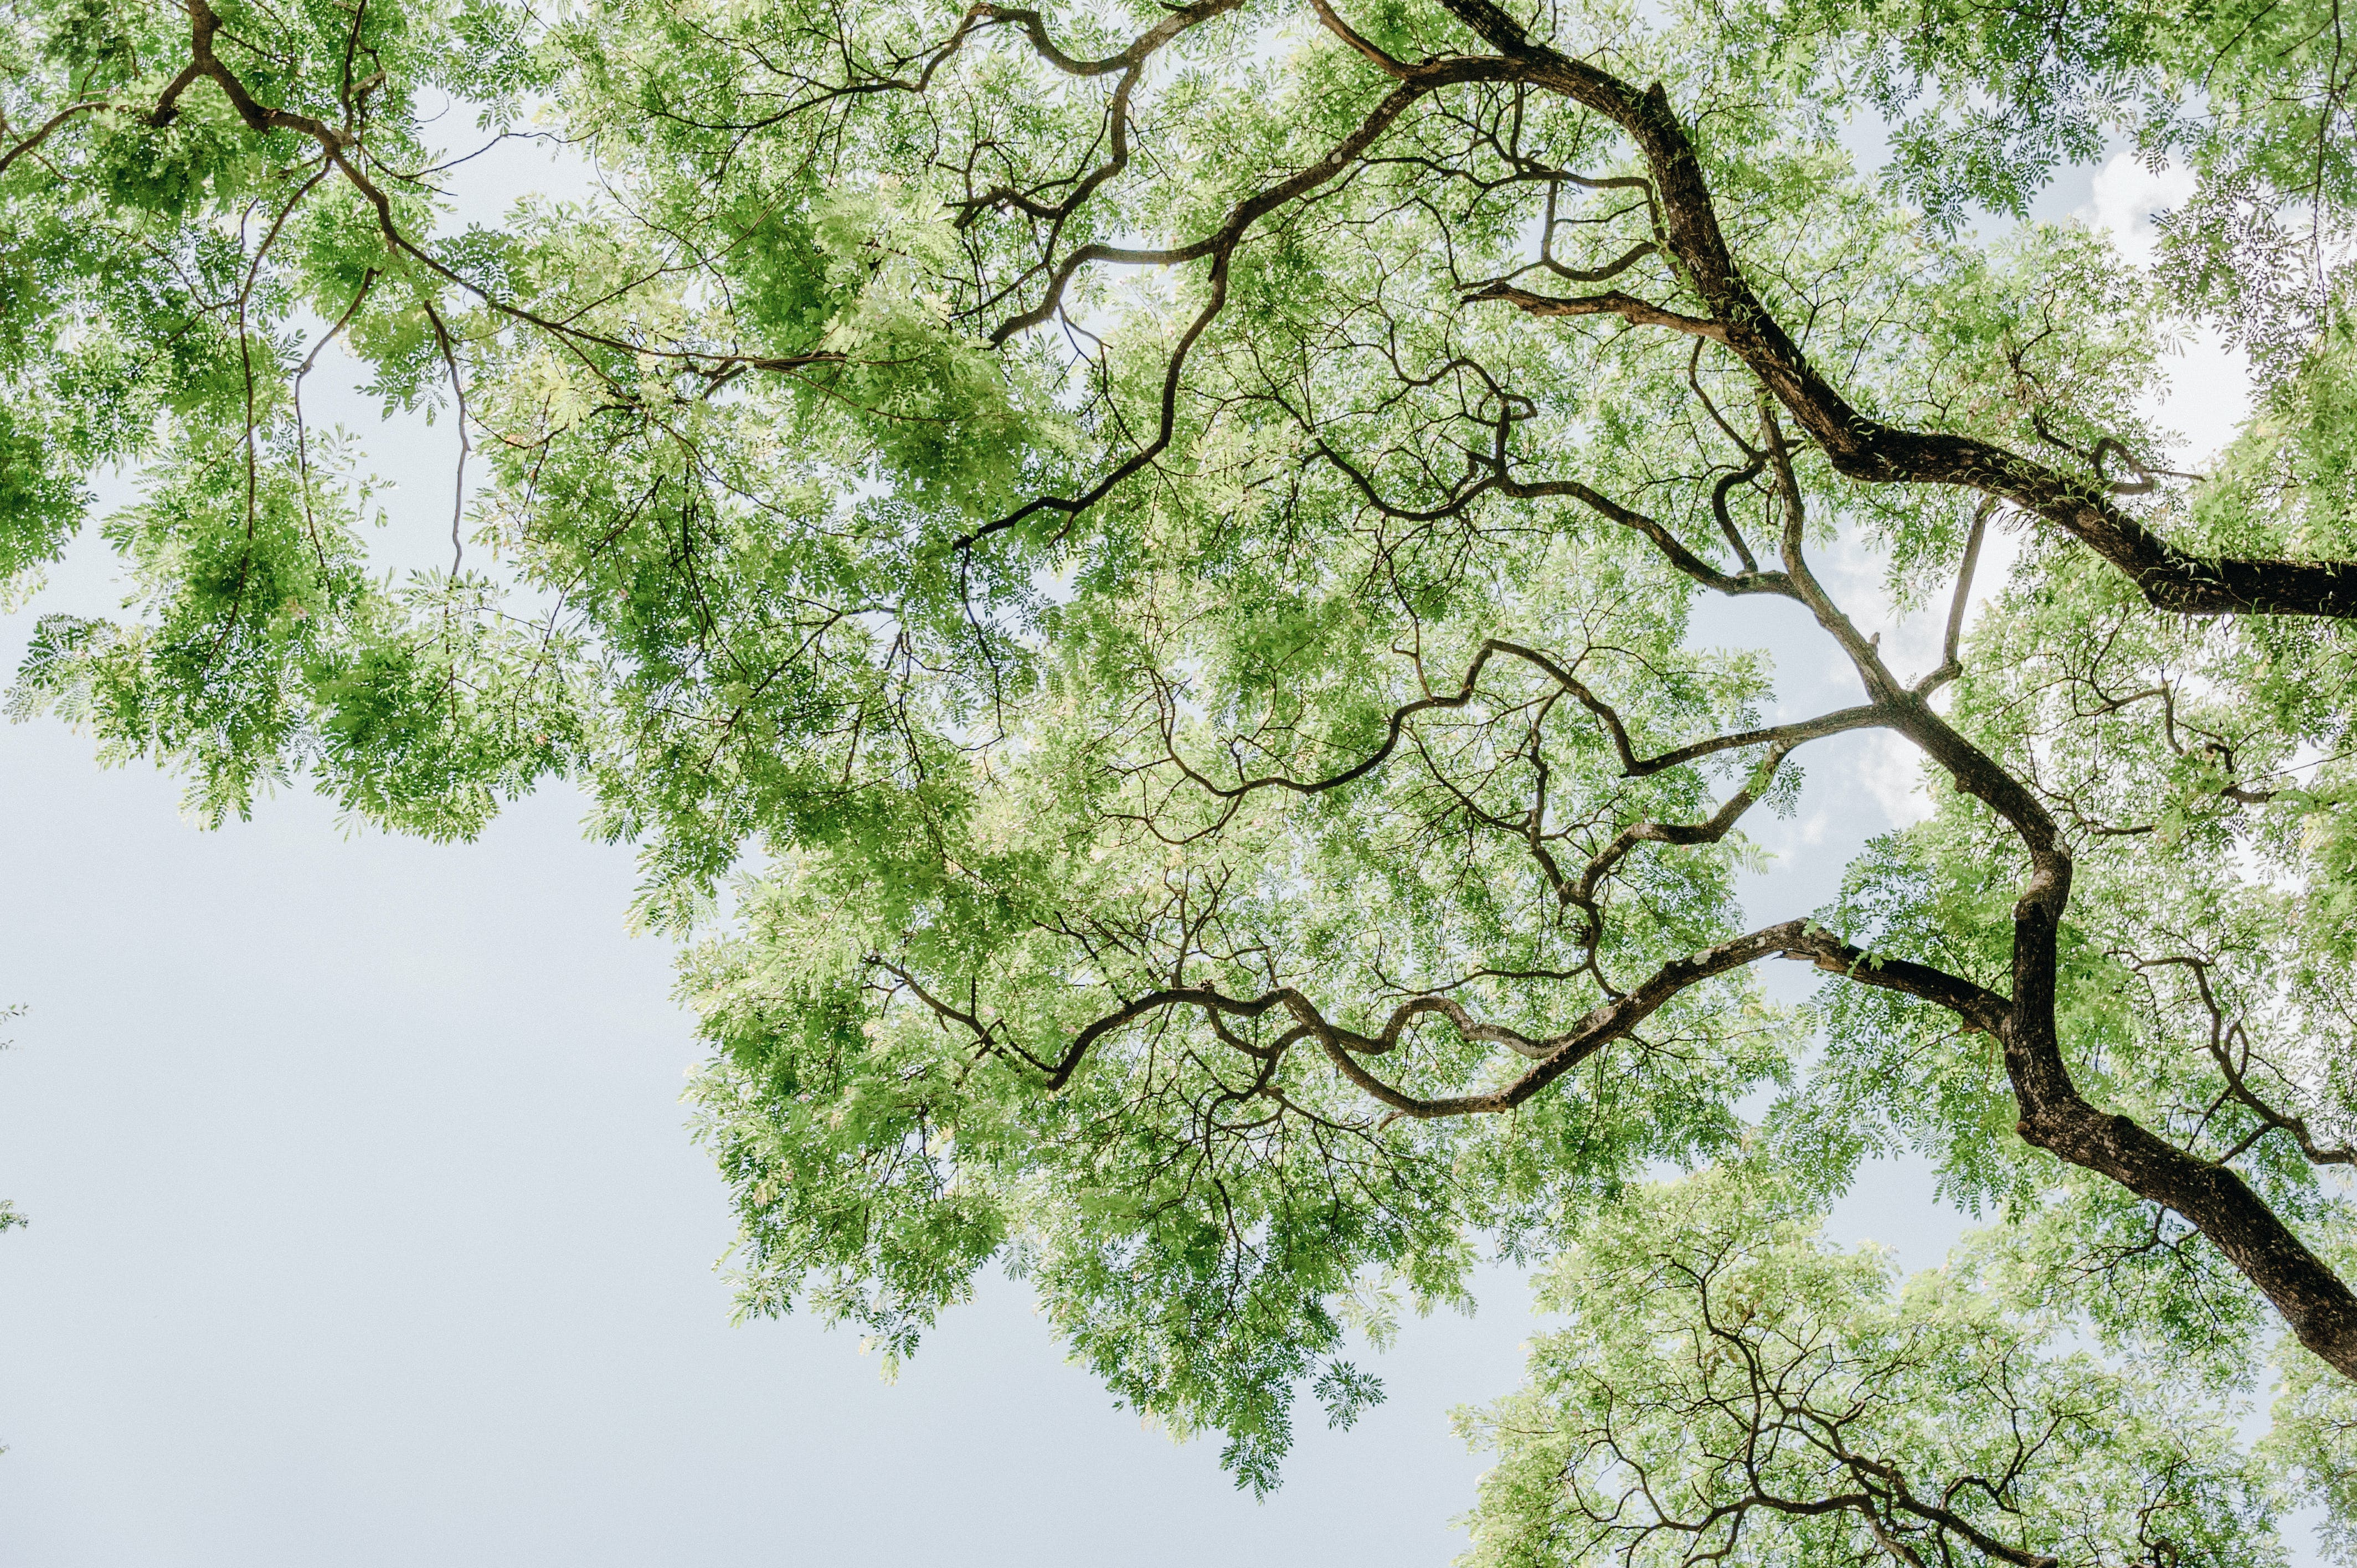 Green Leafed Tree Low Angle Photography